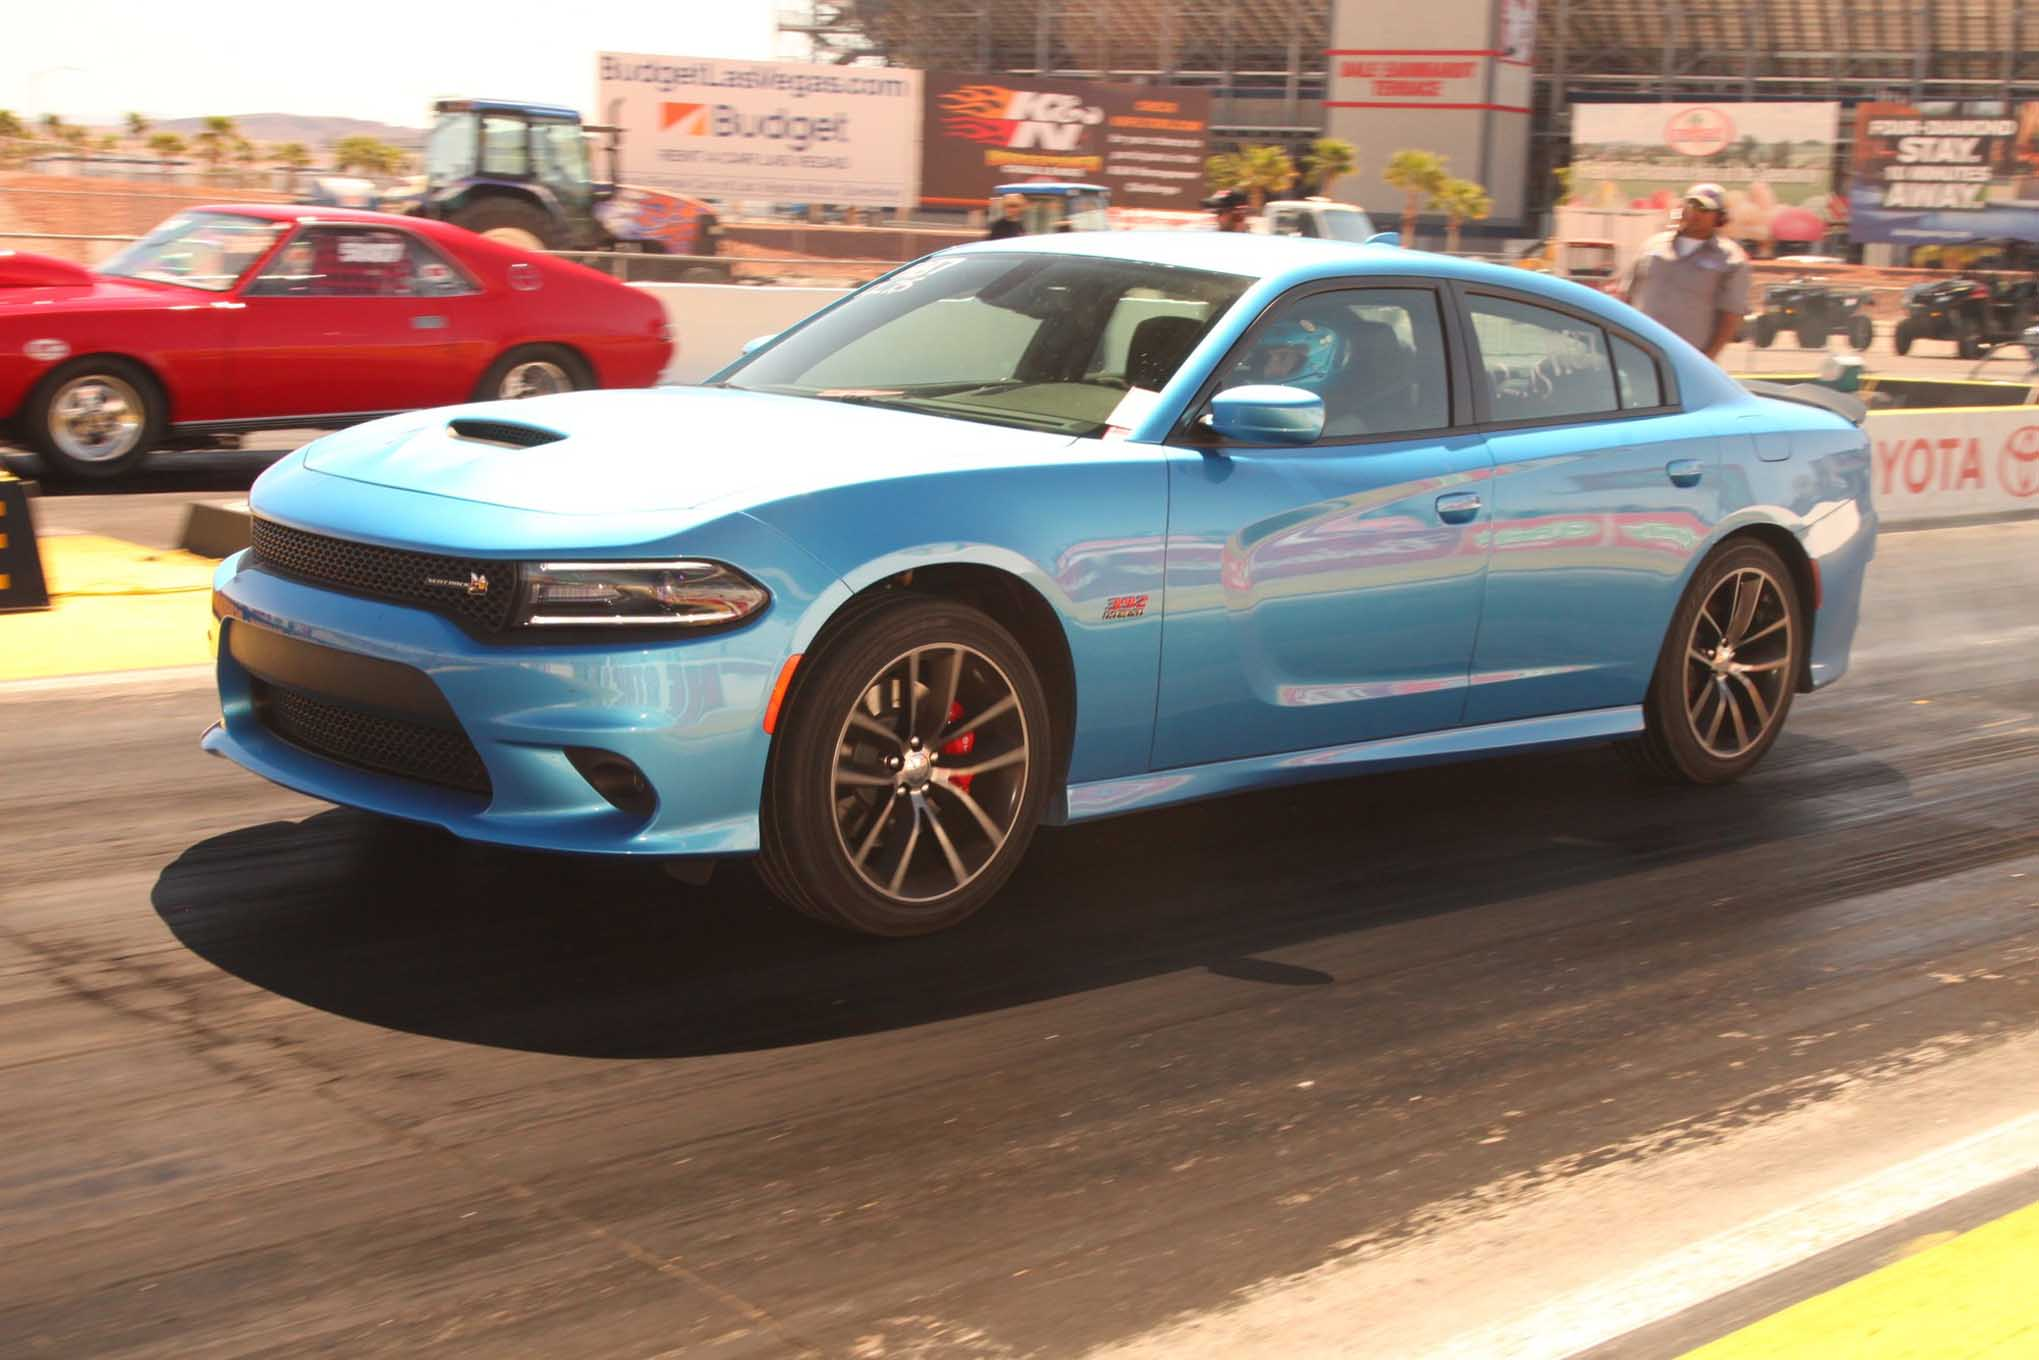 Scat Pack 392 machines are made in two flavors—Challenger R/T and Charger R/T, like this one piloted at last year's MATS by Elana Scherr of Hot Rod magazine. Totally stock, it went 12.80s with the OE tires. We've since gone 12.0s with a lightly modded Scat Pack Challenger auto and stock tires.